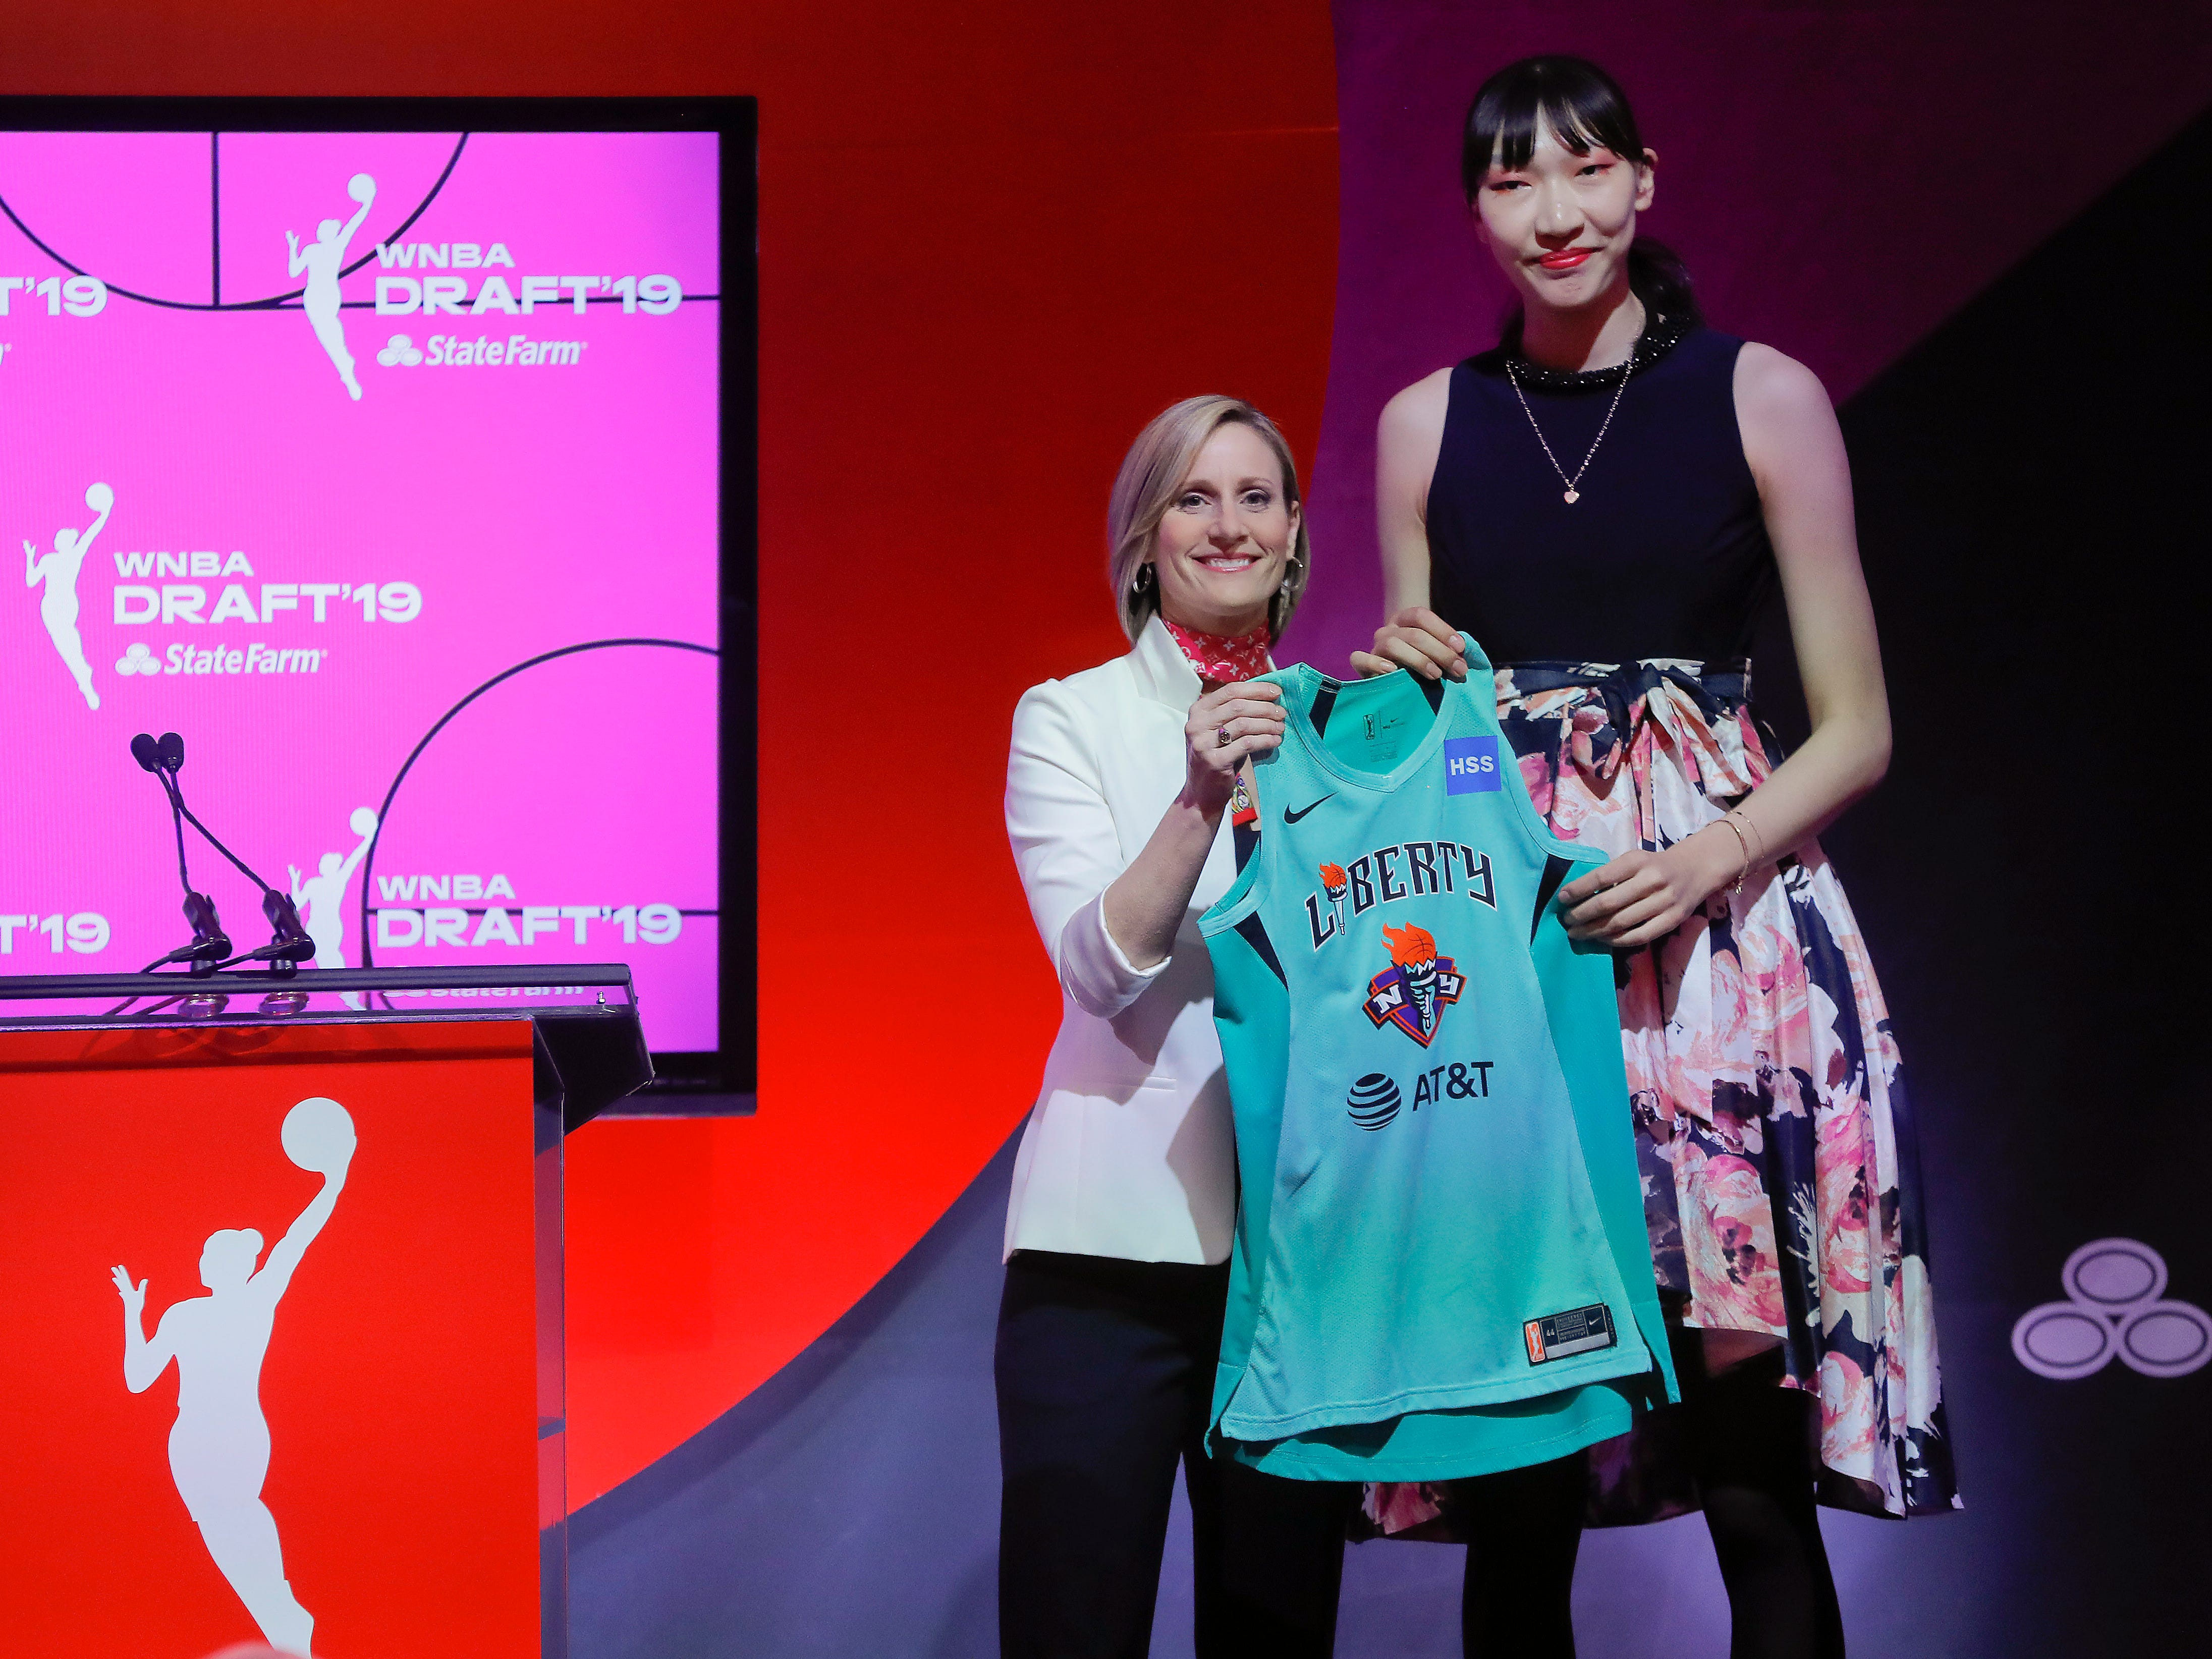 Han Xu, of China, poses for a photo with WNBA COO Christy Hedgpeth after being selected by the New York Liberty in the second round of the WNBA draft.